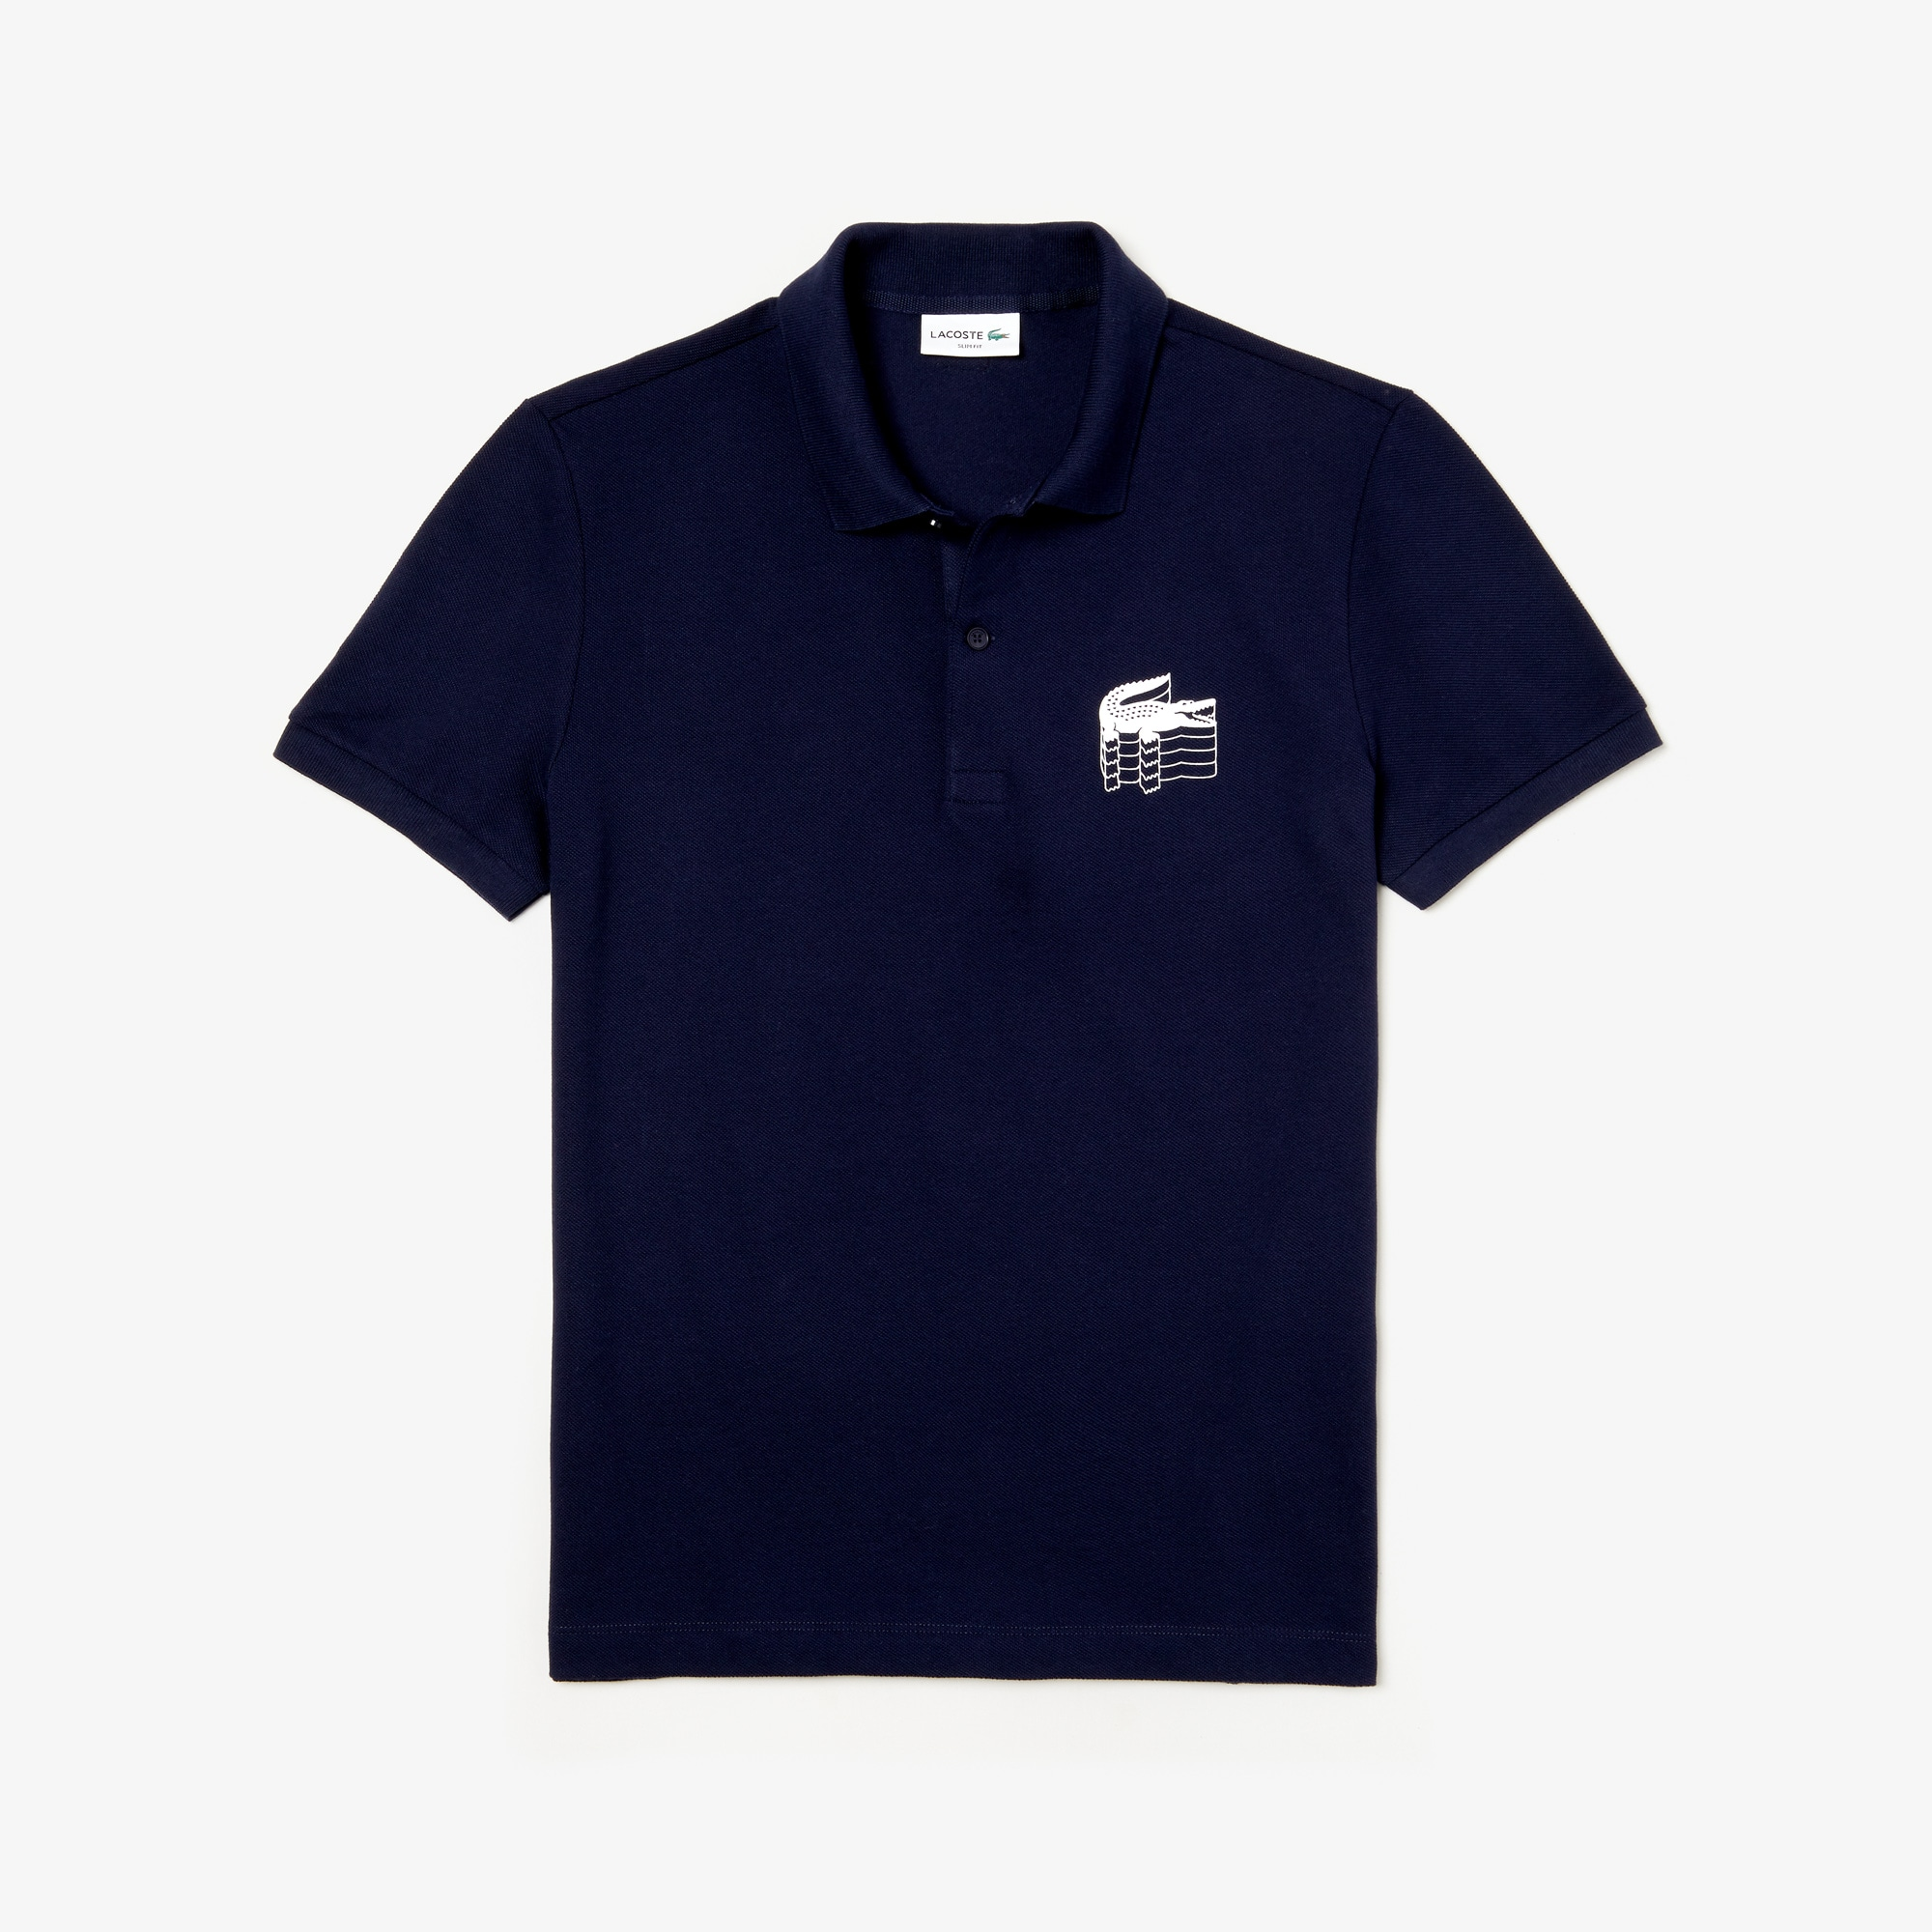 Men S Polo Shirts Lacoste Polo Shirts For Men Lacoste